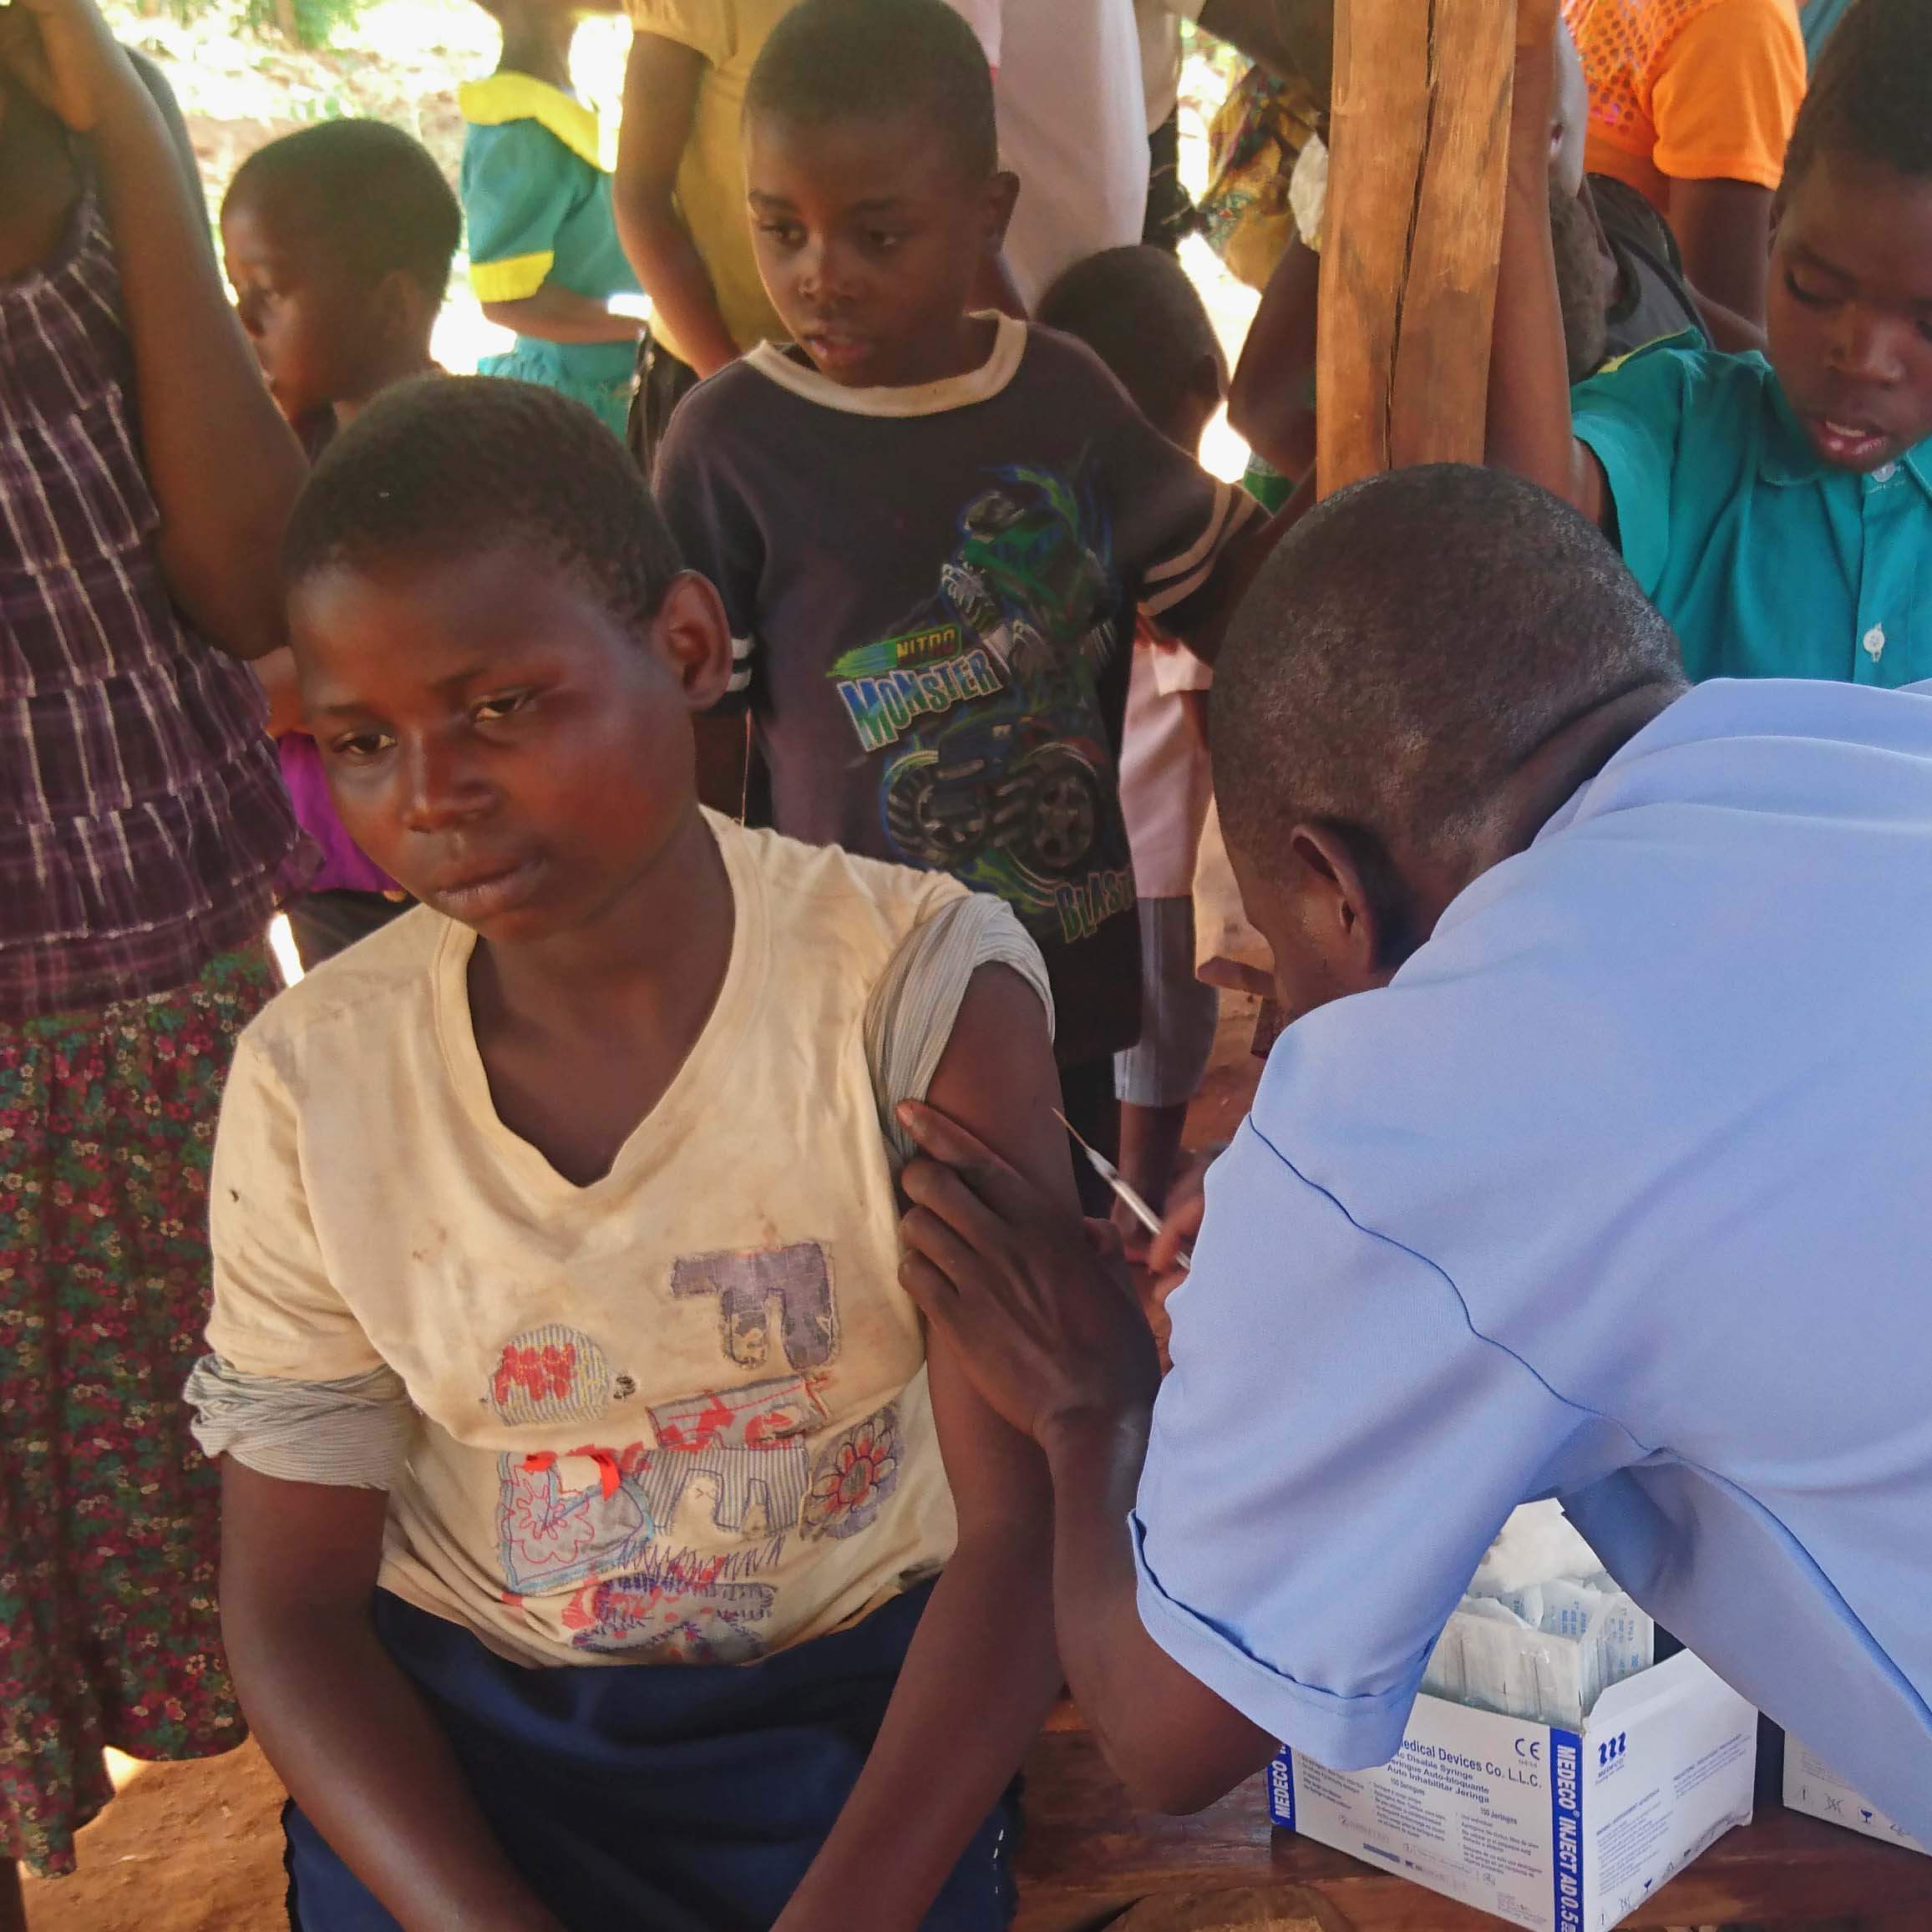 http://www.climhealthafrica.org/wp-content/uploads/2017/06/Malawi-HSA-366x366.jpg